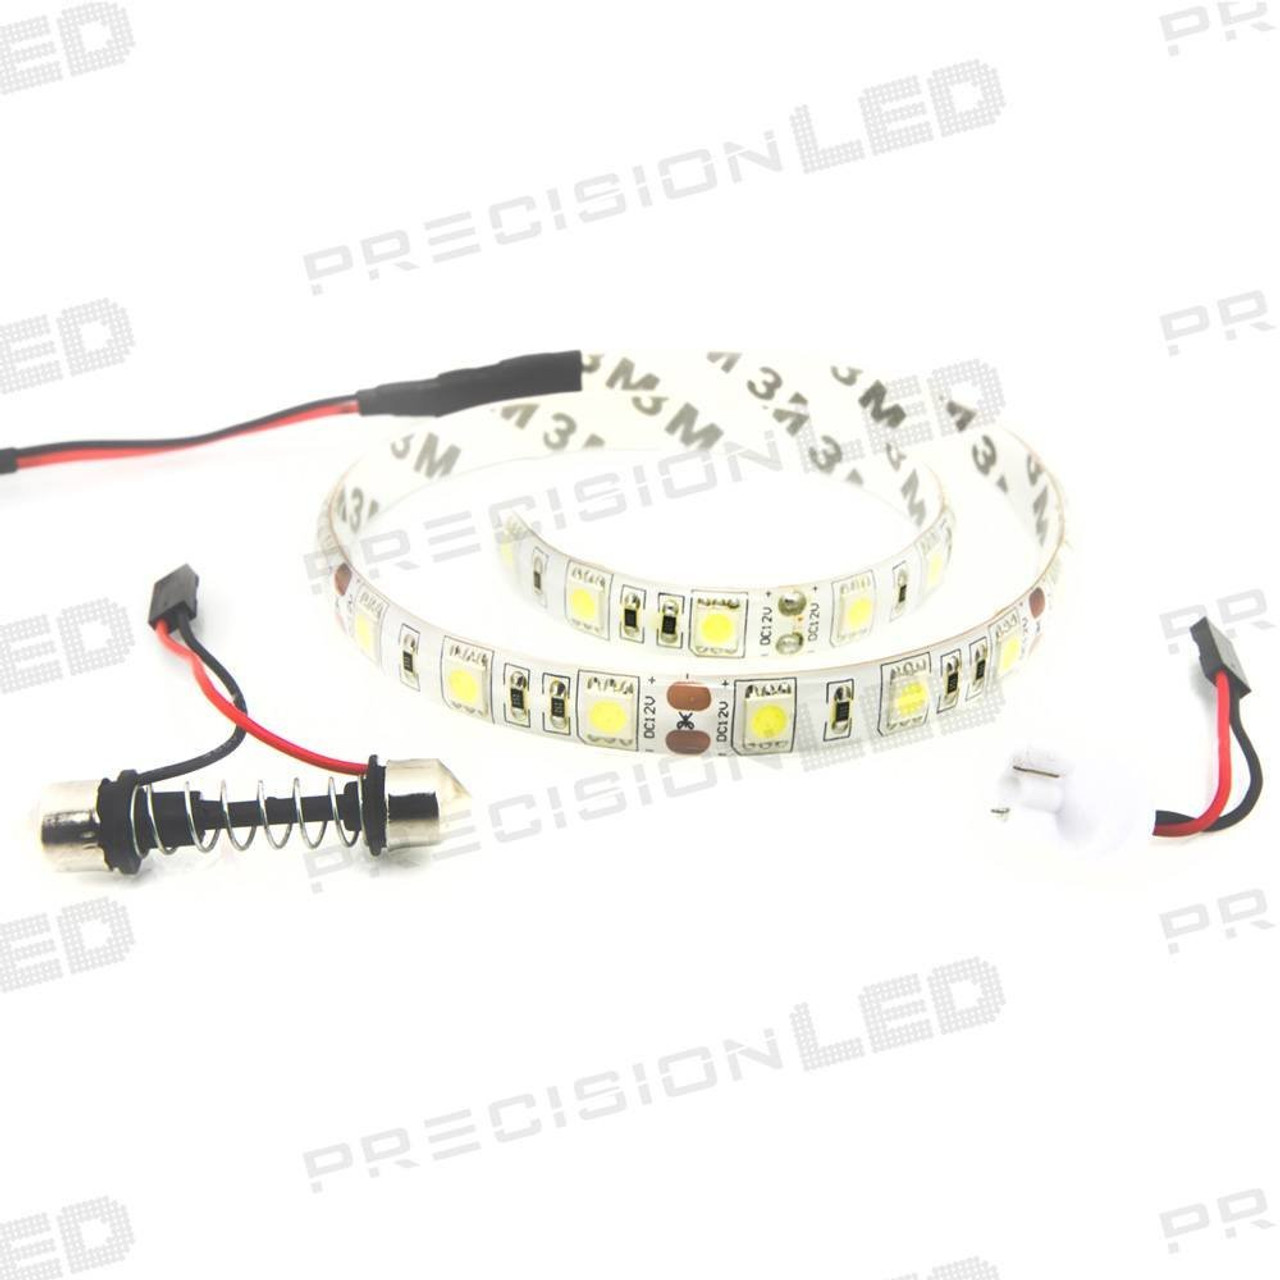 Cadillac STS LED Trunk Strip Light (2005-2011)